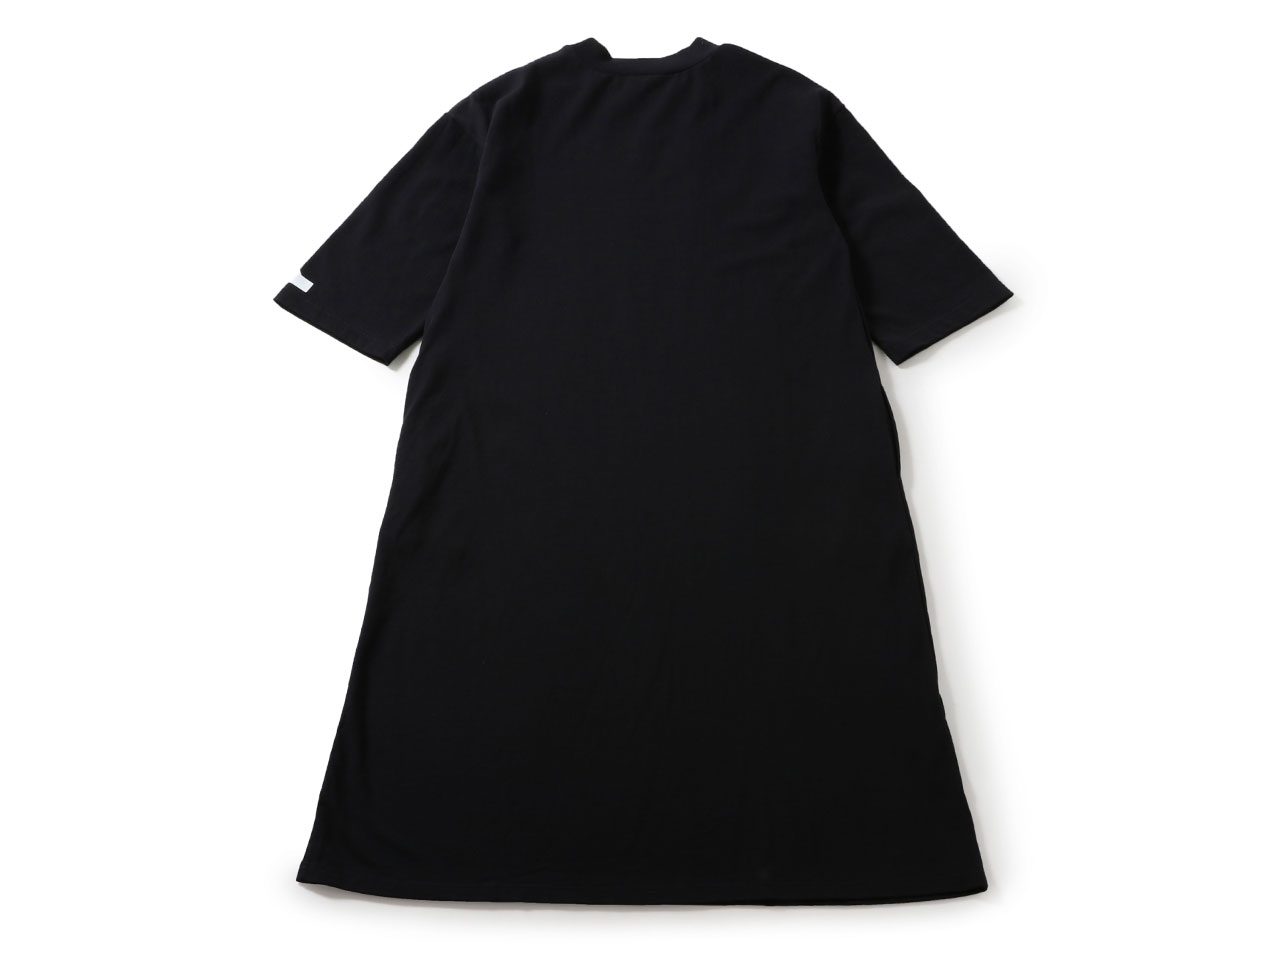 【70%OFF】IN THE HOUSE WOMEN MOCK NECK DRESS ith-01